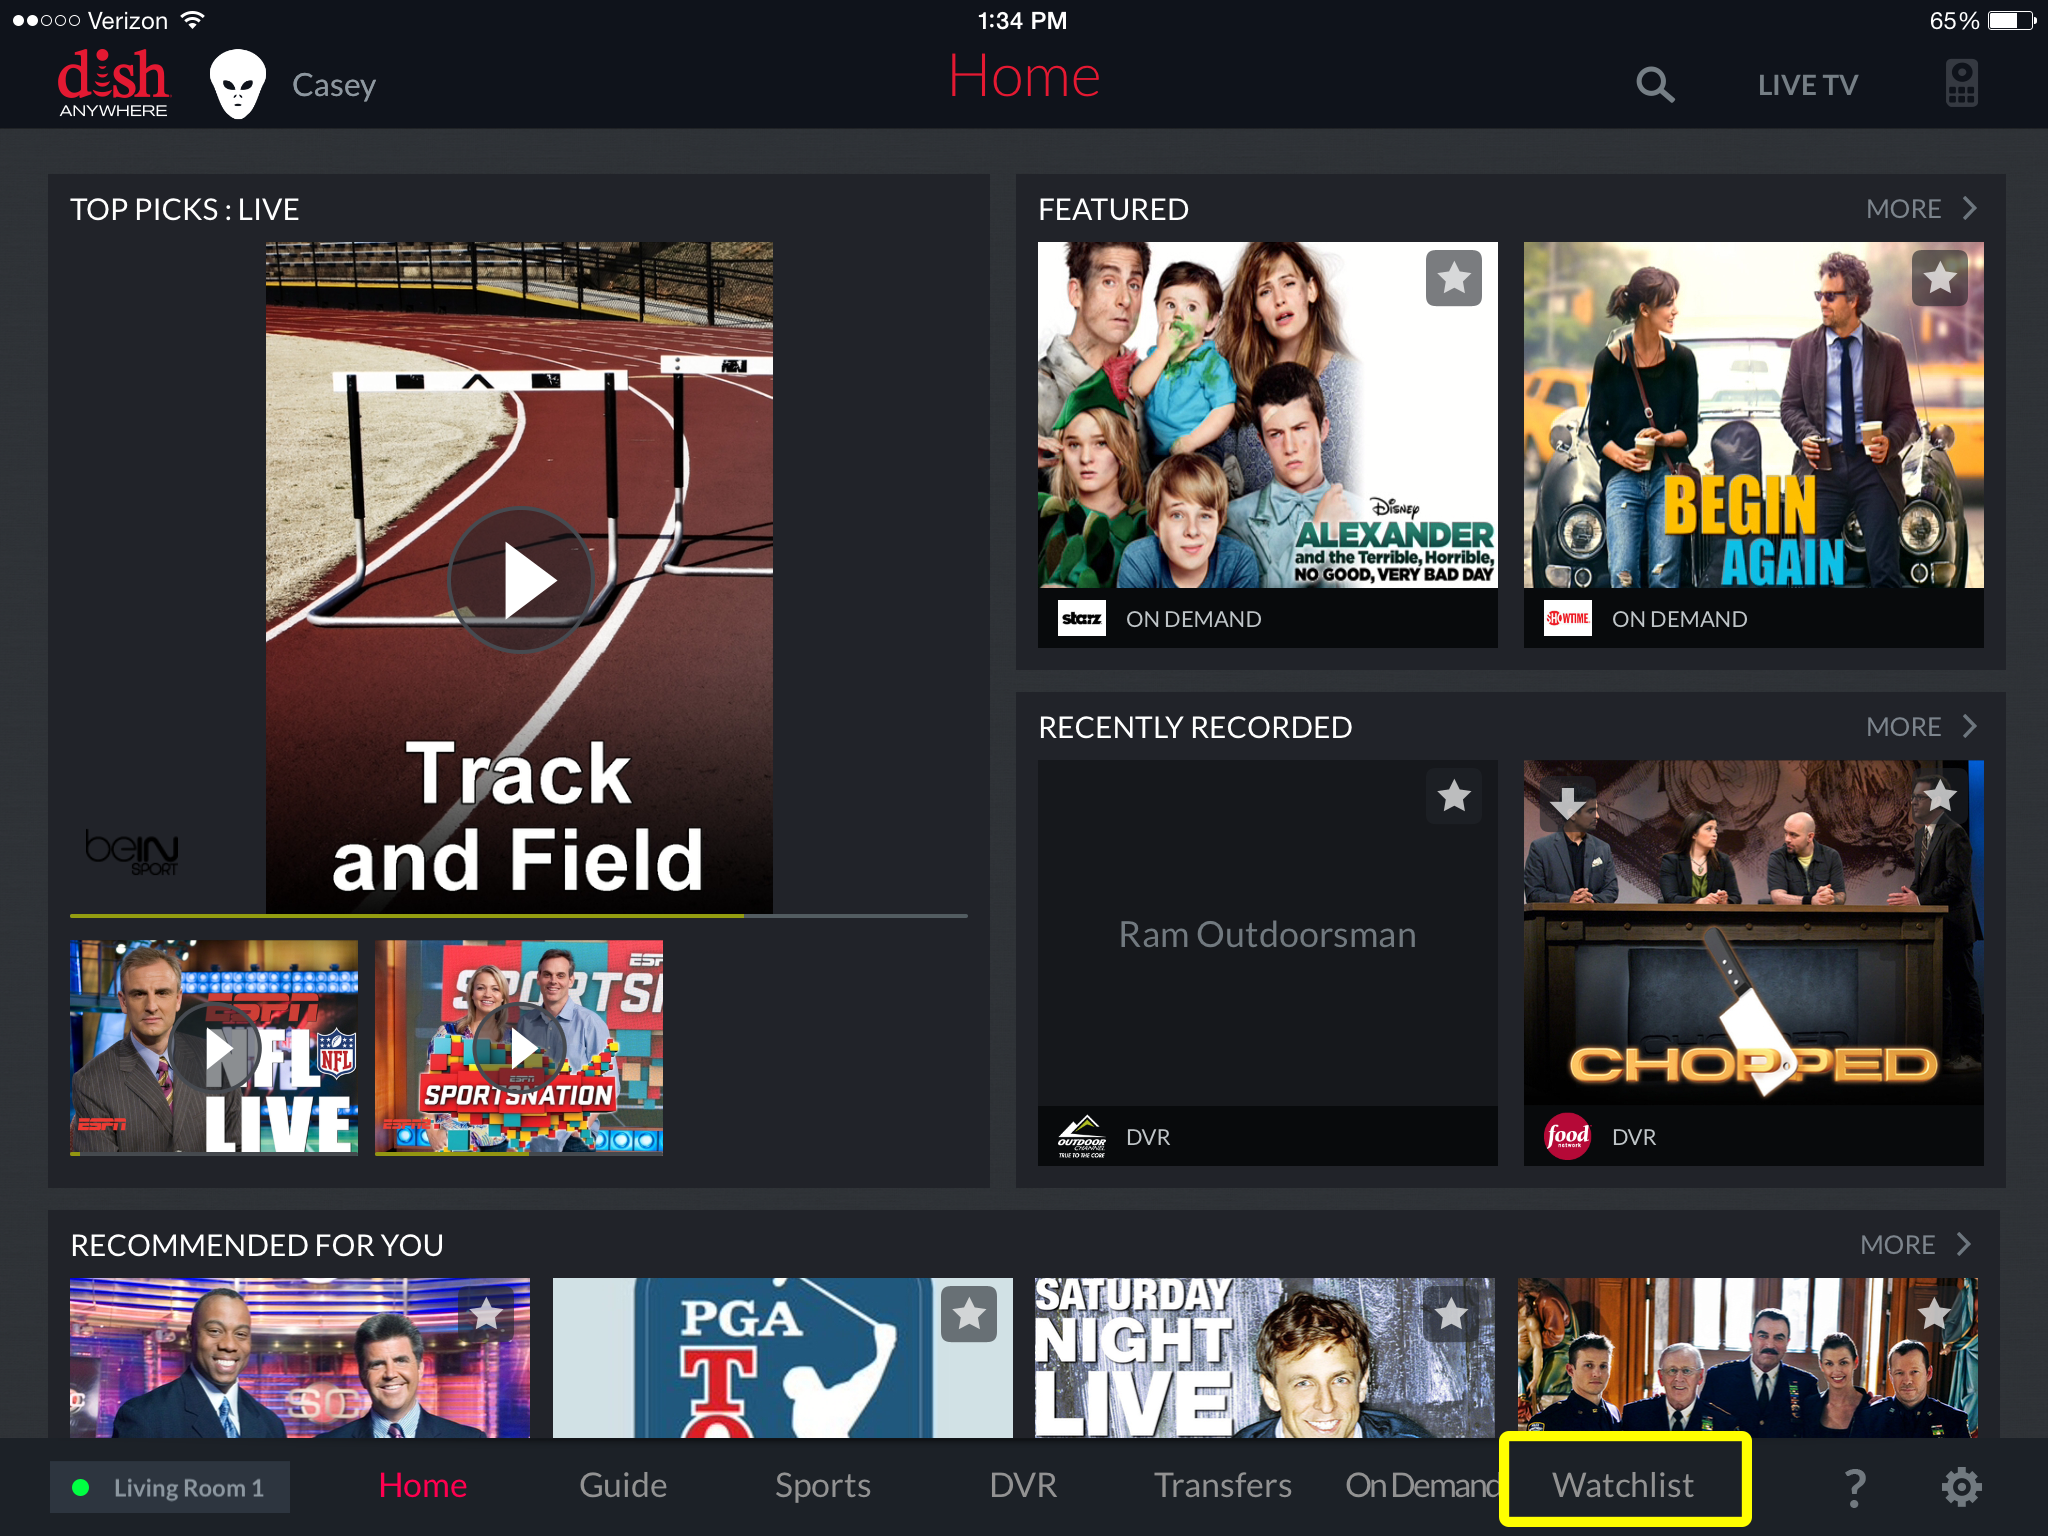 watchlist menu link at the bottom of the DISH Anywhere tablet app